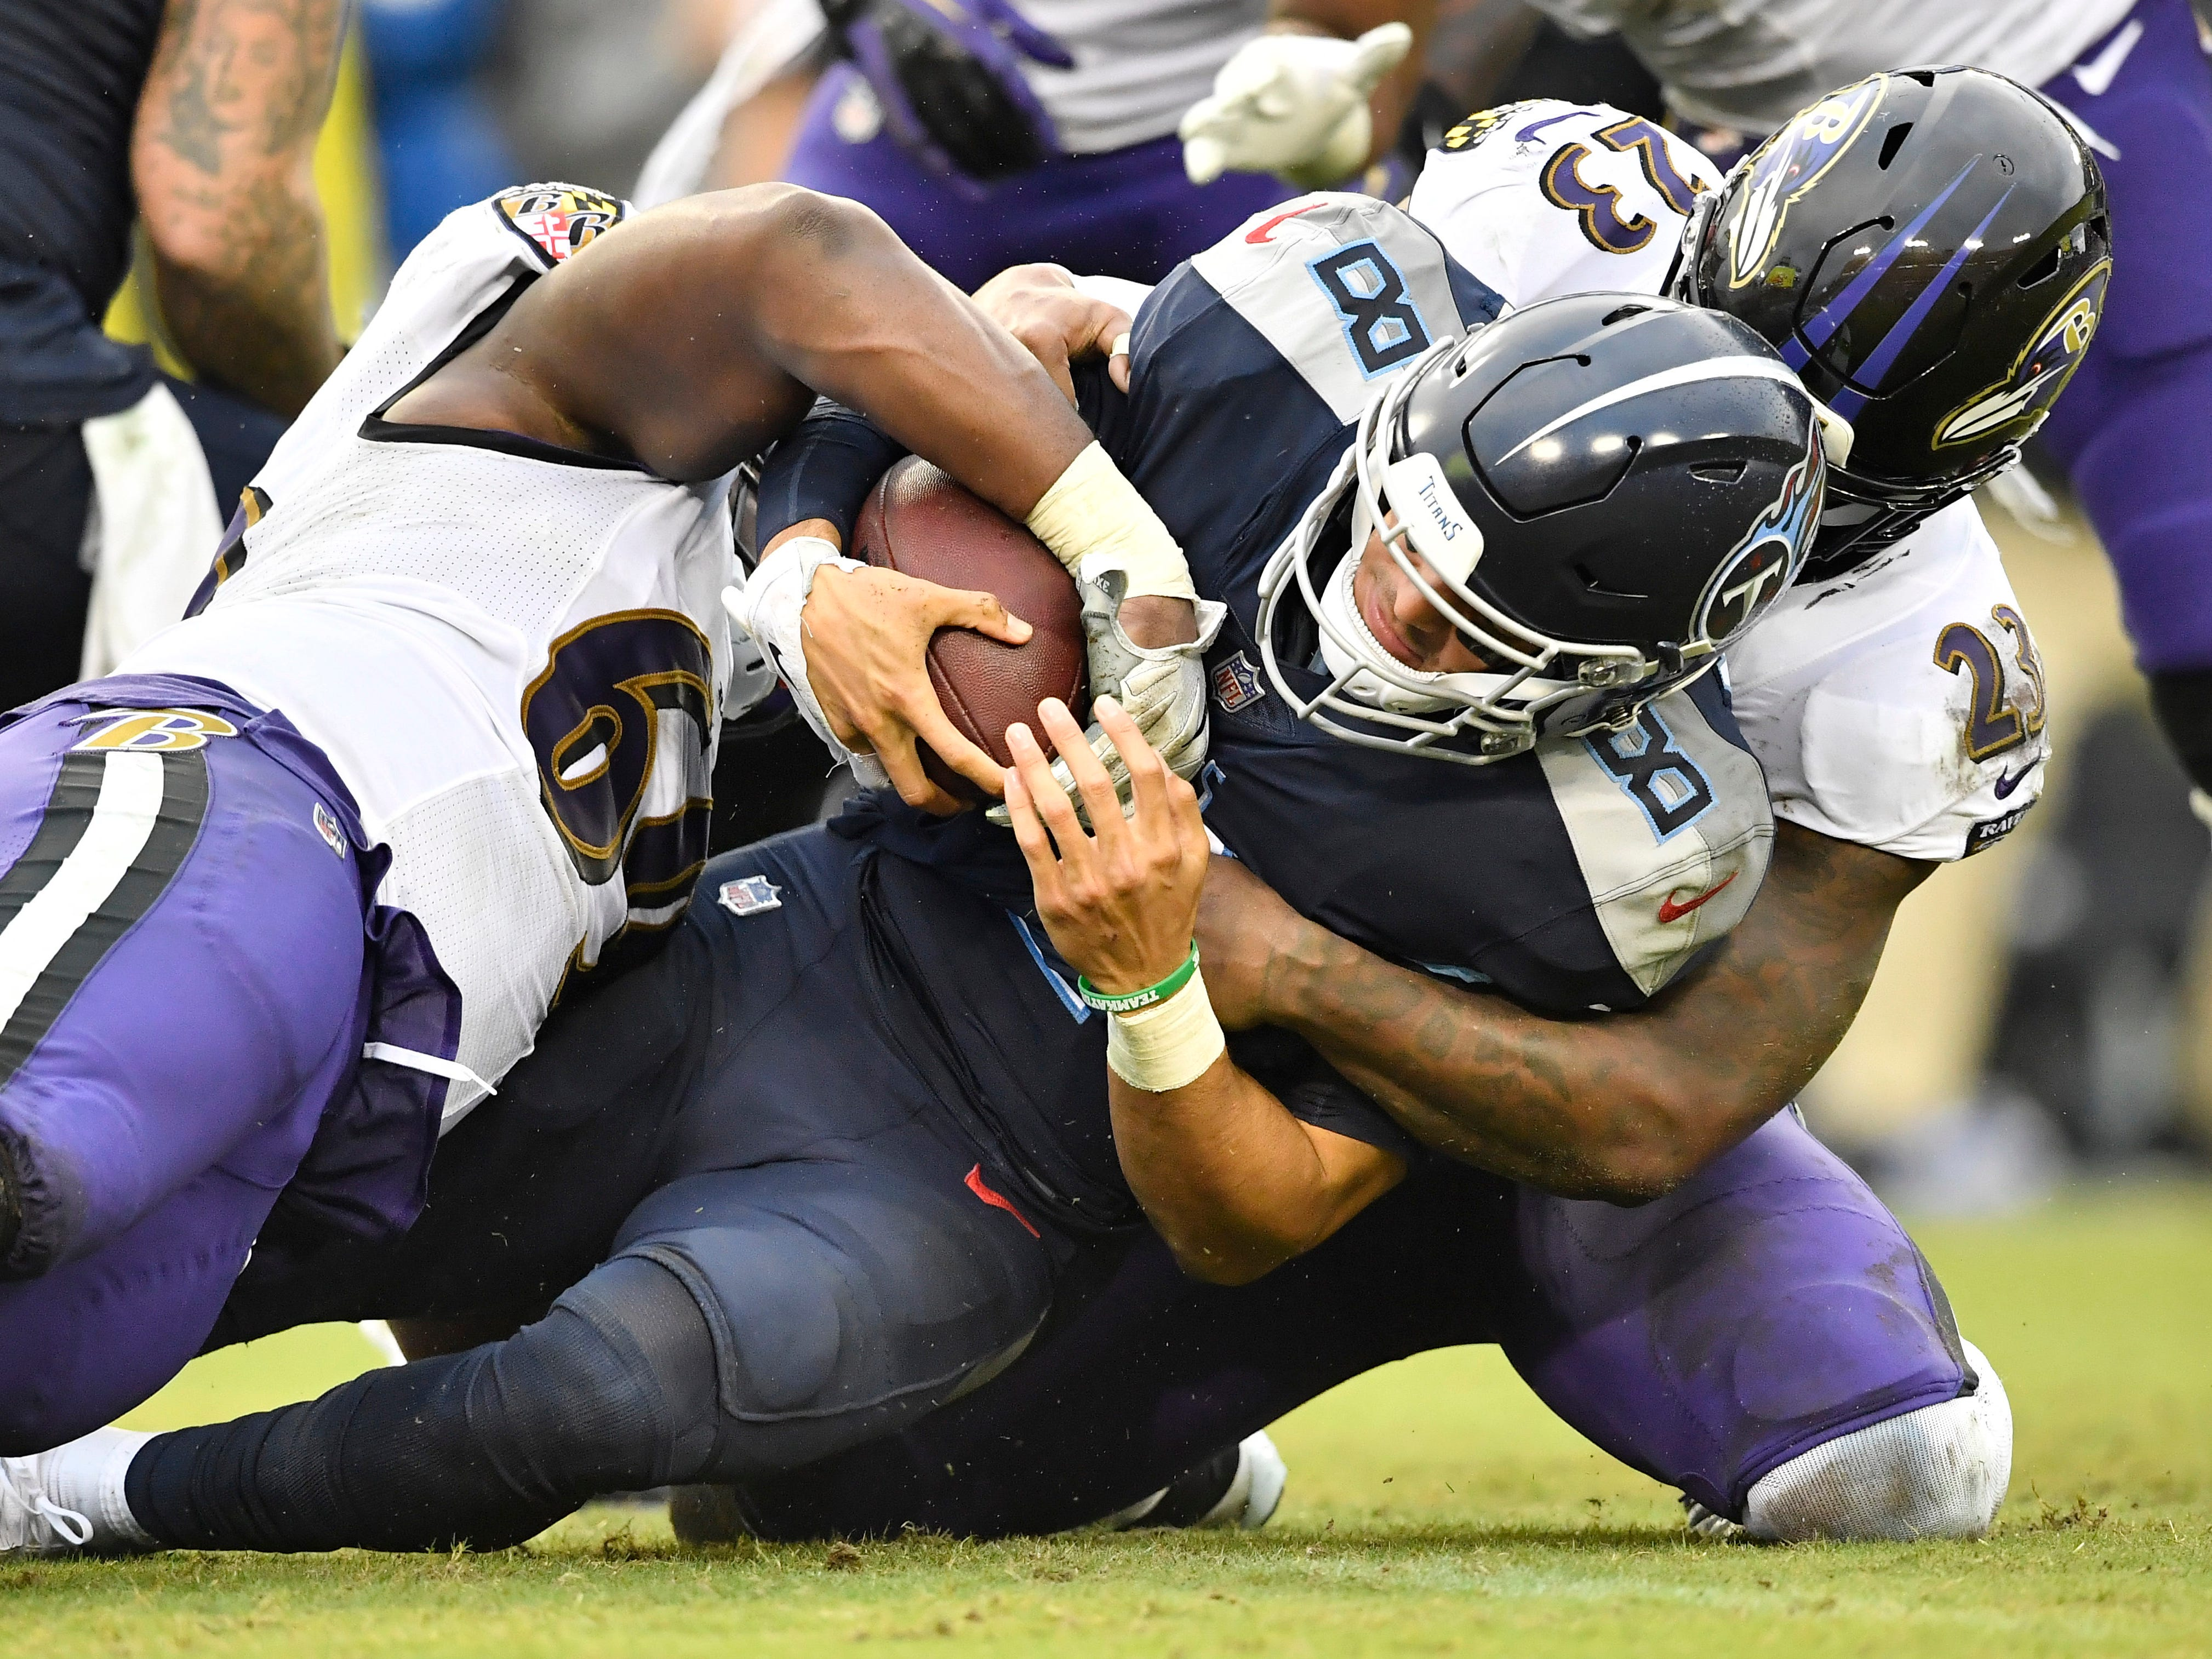 Worst performance: 11 sacks allowed vs. Ravens -- Ravens defensive tackle Willie Henry (69) and strong safety Tony Jefferson (23) sack Titans quarterback Marcus Mariota (8) in the third quarter at Nissan Stadium Sunday, Oct. 14, 2018, in Nashville, Tenn.